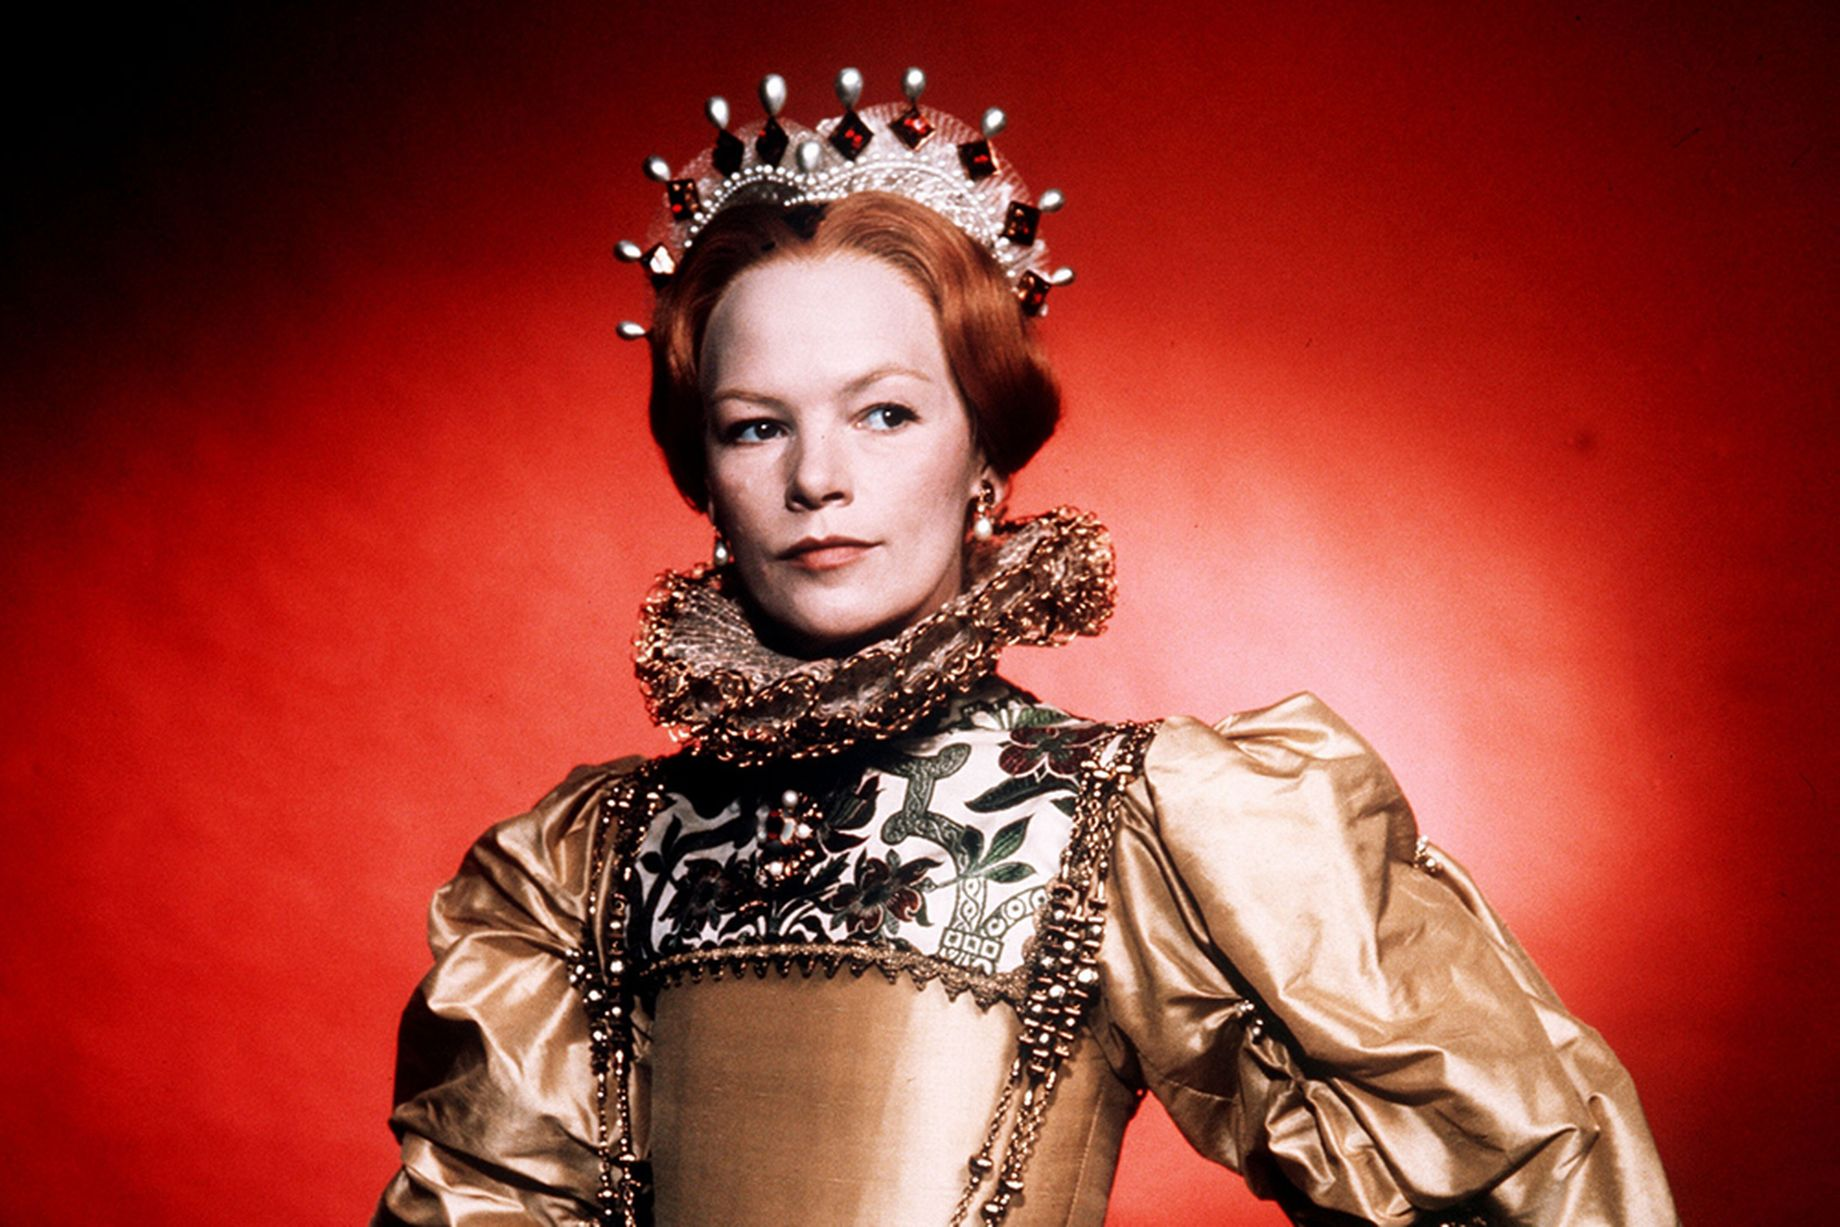 Glenda Jackson Widescreen for desktop